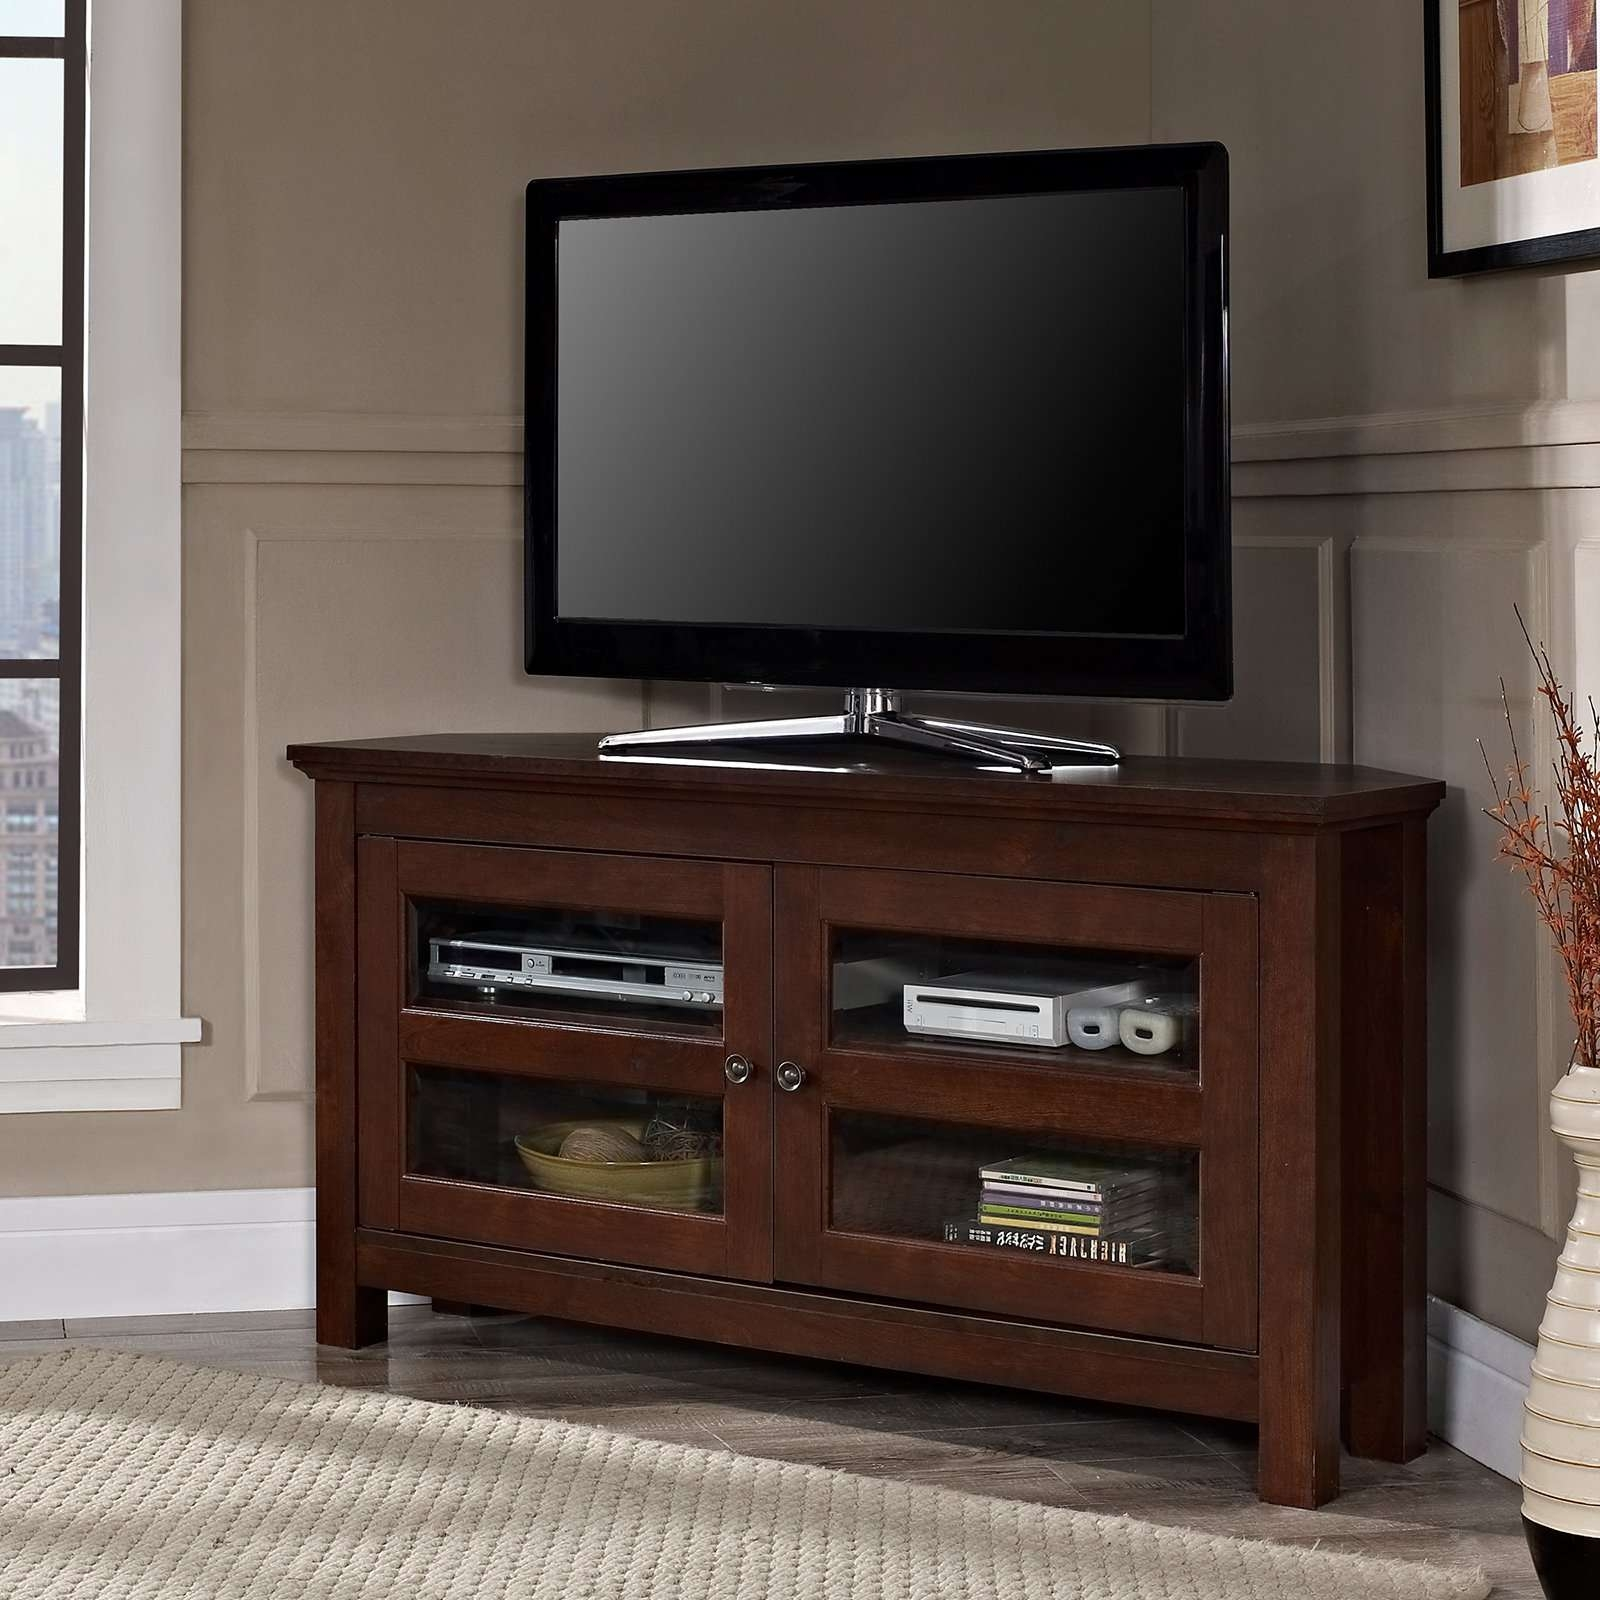 Compton Black Corner Tv Stand | Hayneedle Regarding Black Corner Tv Cabinets (View 4 of 20)